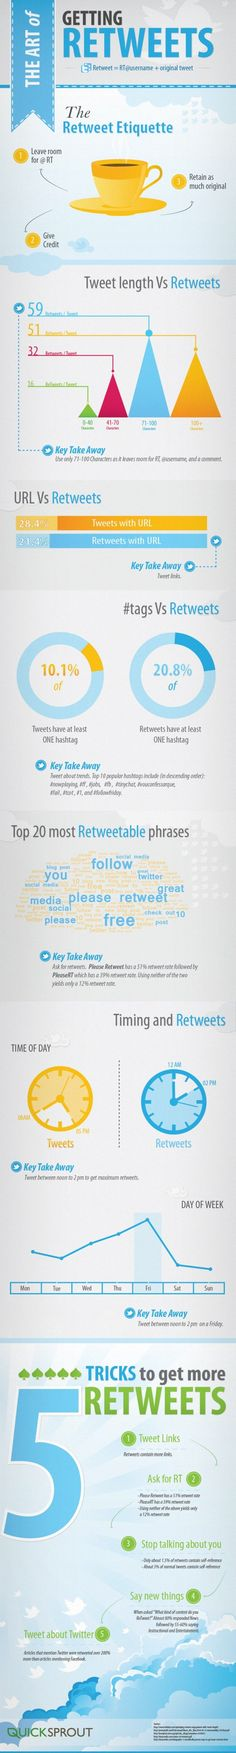 The Art of Getting Retweets : ( Infographic )